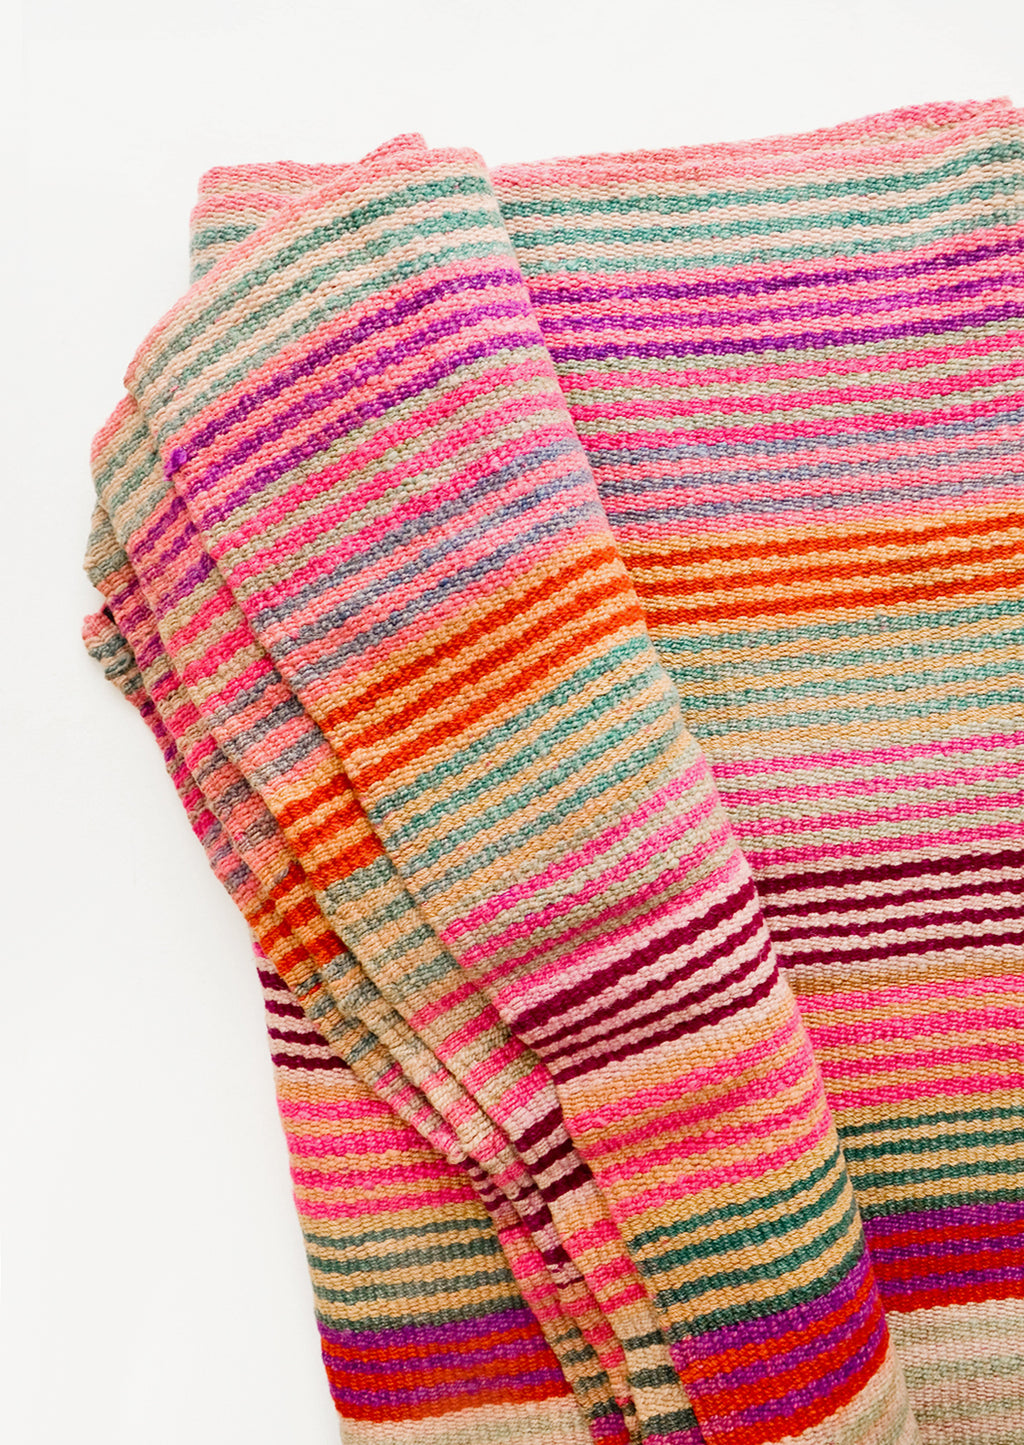 1: Vintage wool textile in thin, brightly multi-colored striped pattern